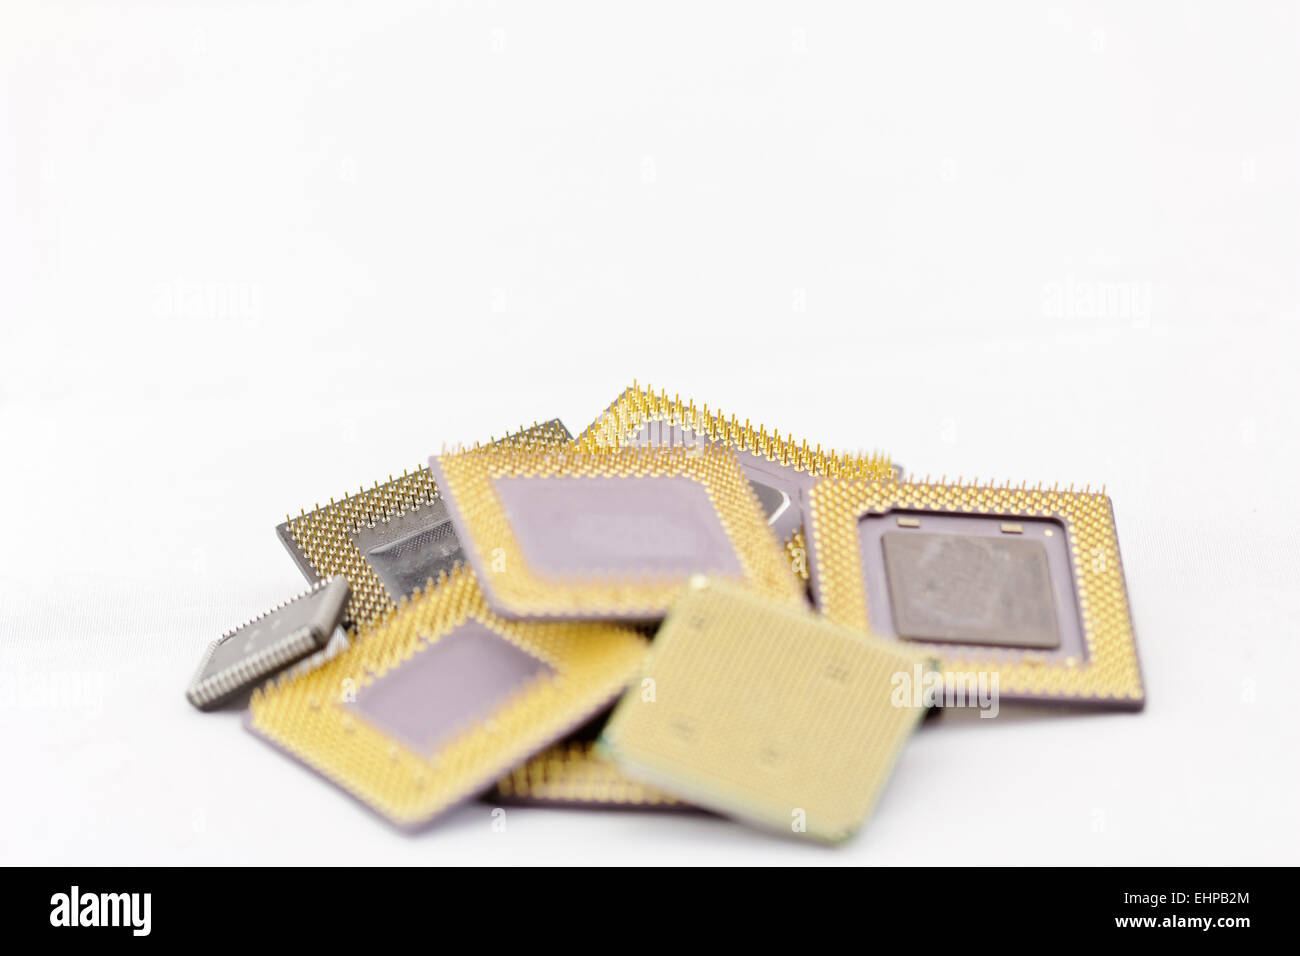 close up of cpu processors - Stock Image